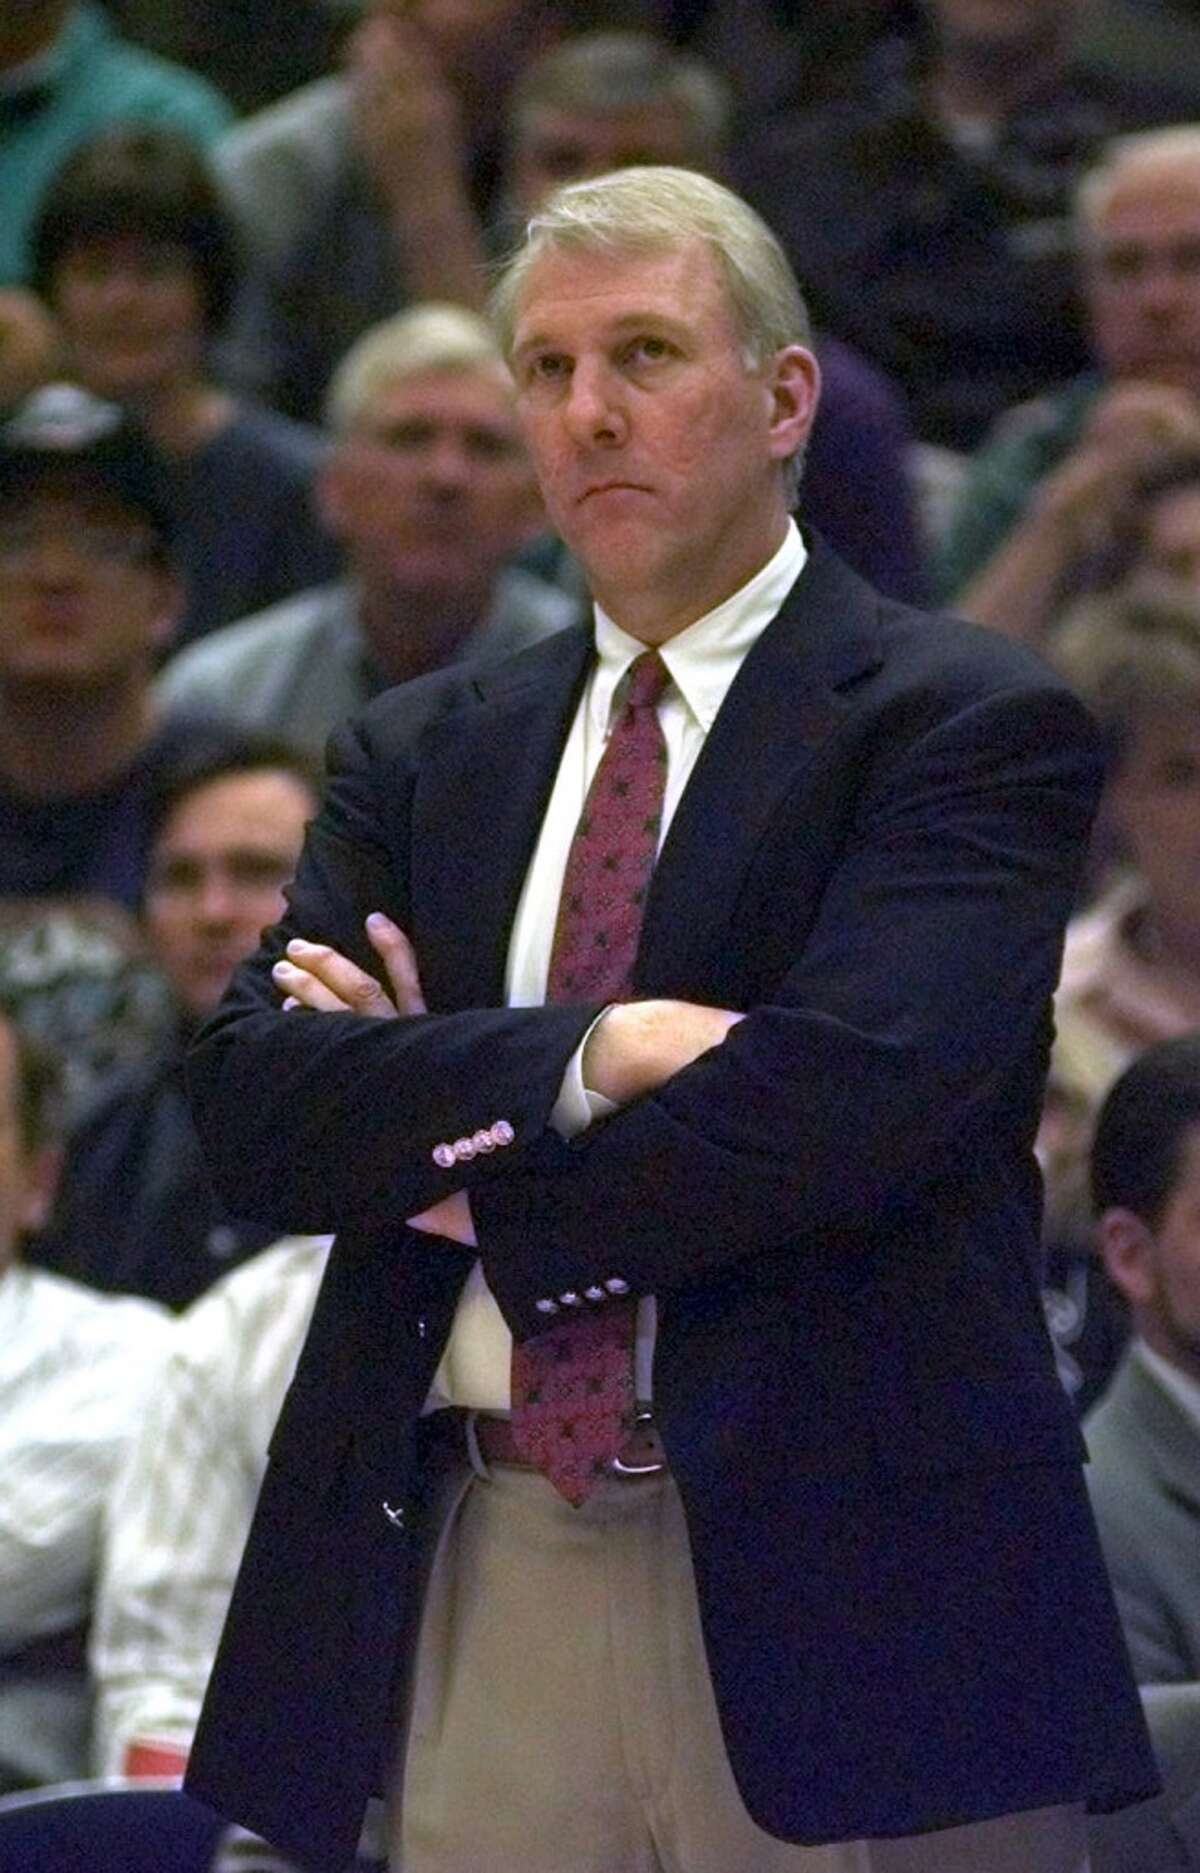 In 1996, Gregg Popovich, then Spurs' general manager, chose himself to replace head coach Bob Hill after a 3-15 start. Pop doesn't fare much better, going 17-47 in his first season as an NBA coach. The ensuing years, however, will be much kinder.